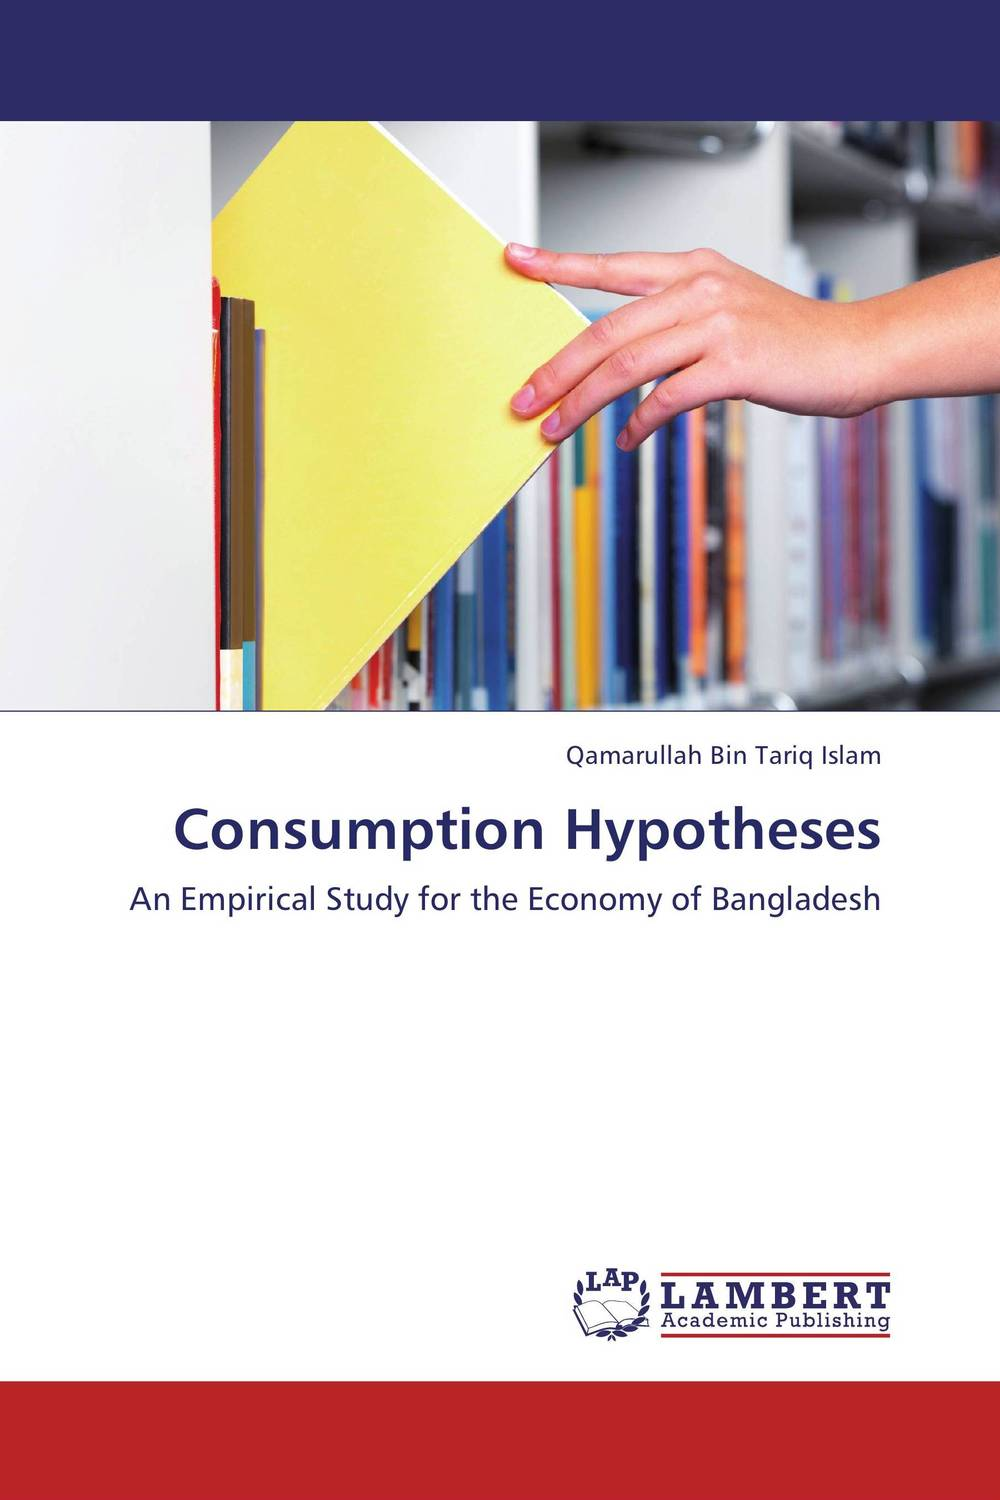 Consumption Hypotheses psychiatric disorders in postpartum period